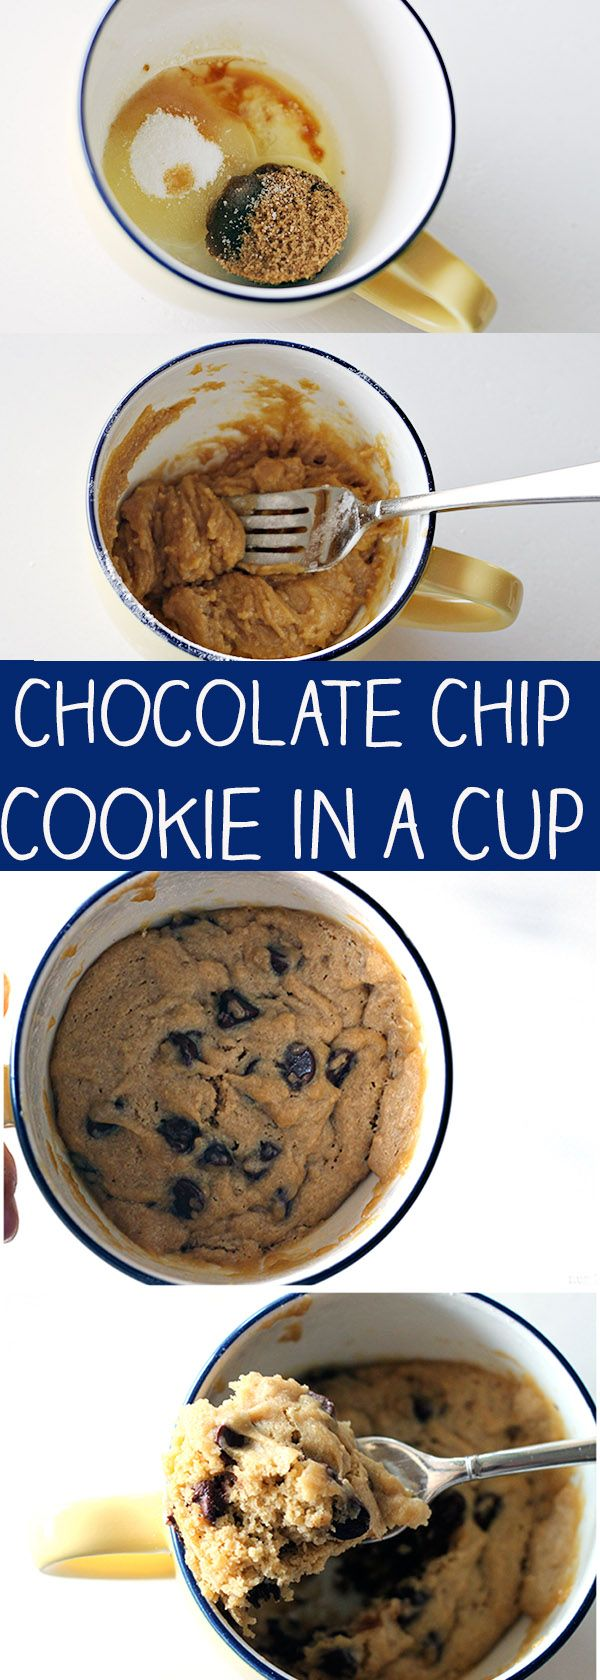 This Chocolate Chip Cookie in a Cup is still one of my favorite recipes on my blog! A fresh, homemade chocolate chip cookie that you can make in the microwave. No, really! It's a simple recipe that uses the same ingredients as a traditional chocolate chip cookie, but takes just minutes to prepare and cook! …